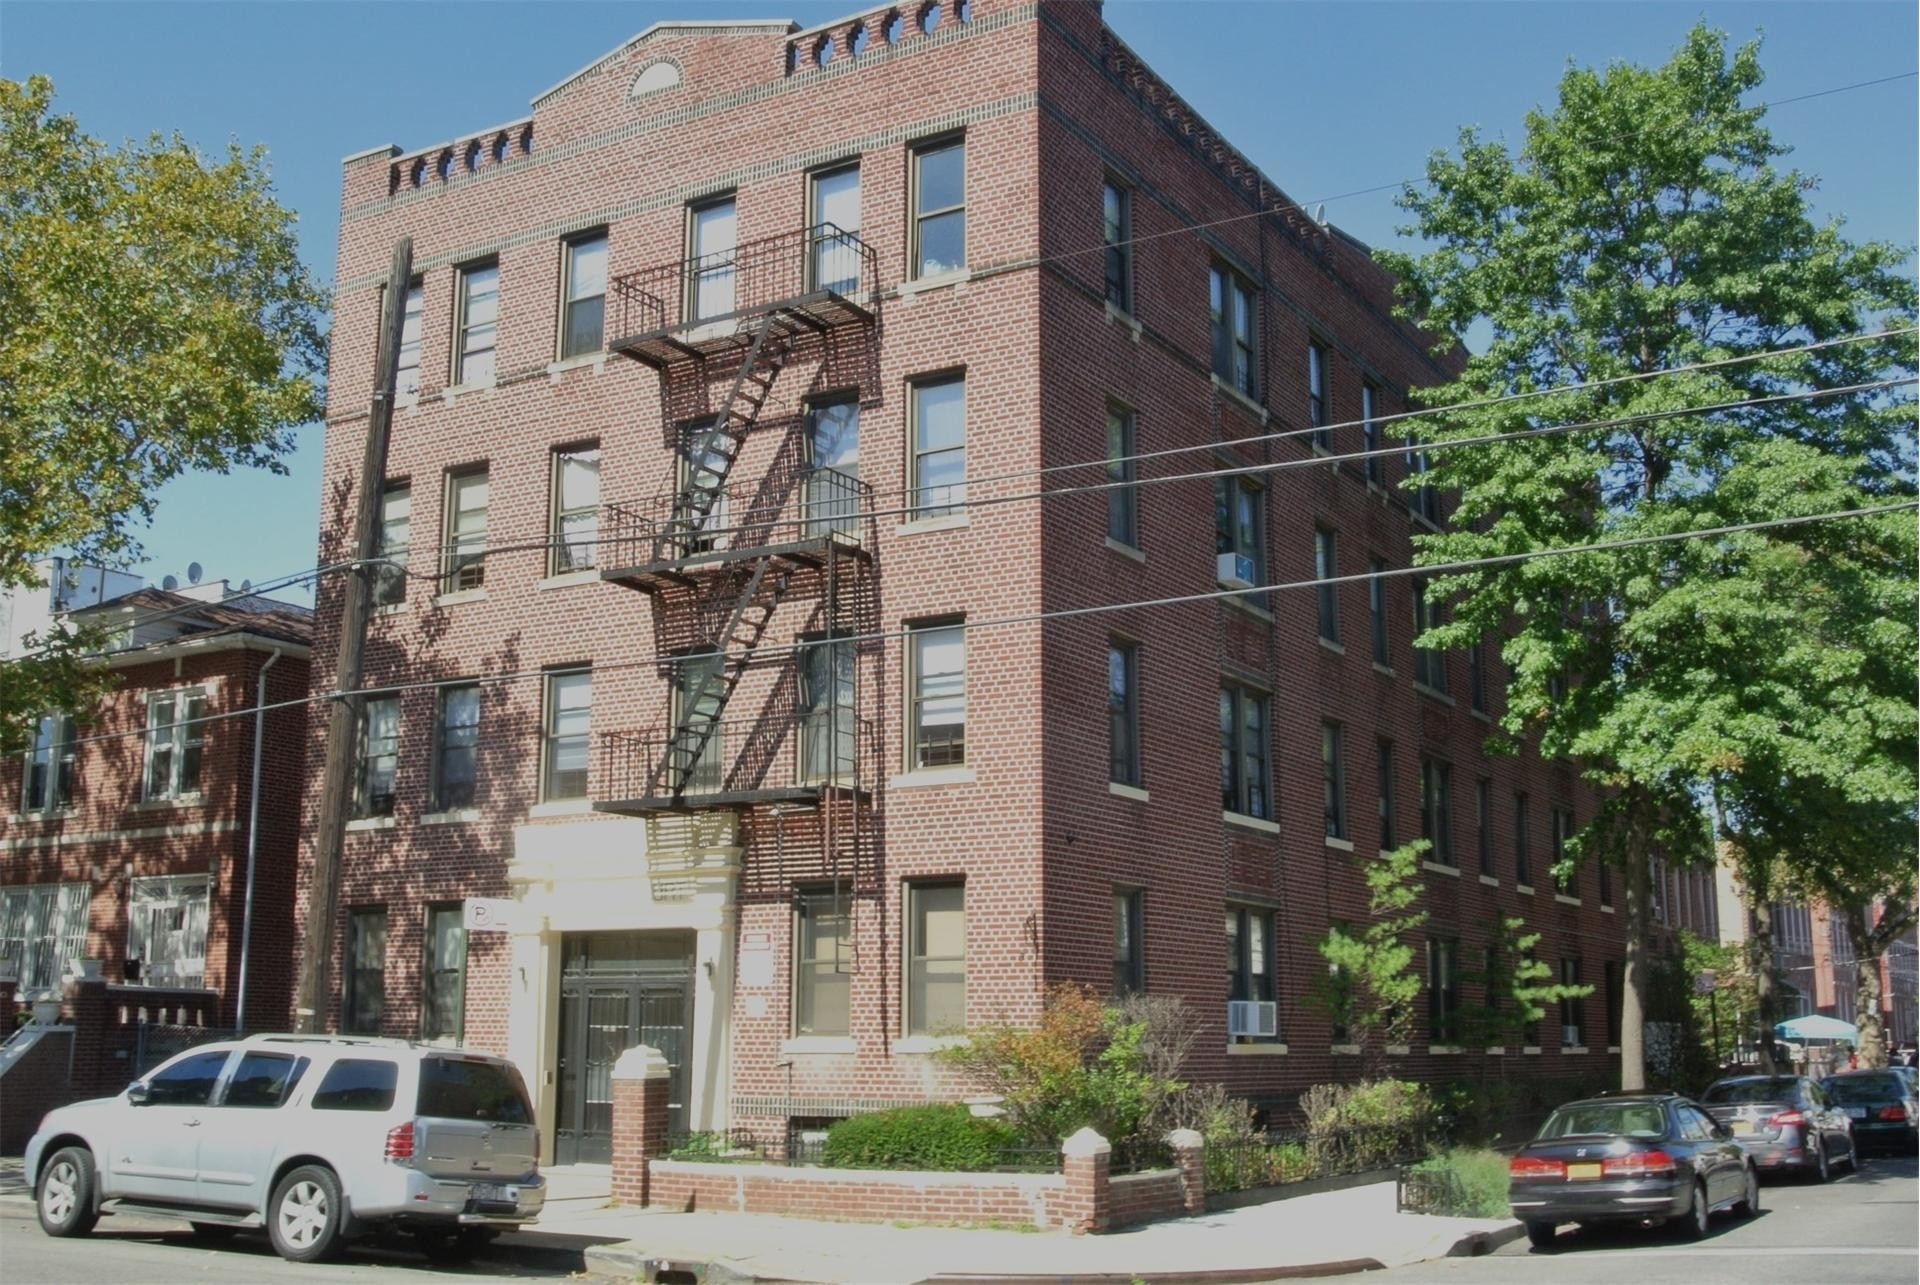 2. 建於1035 Willmohr St, East Flatbush, Brooklyn, NY